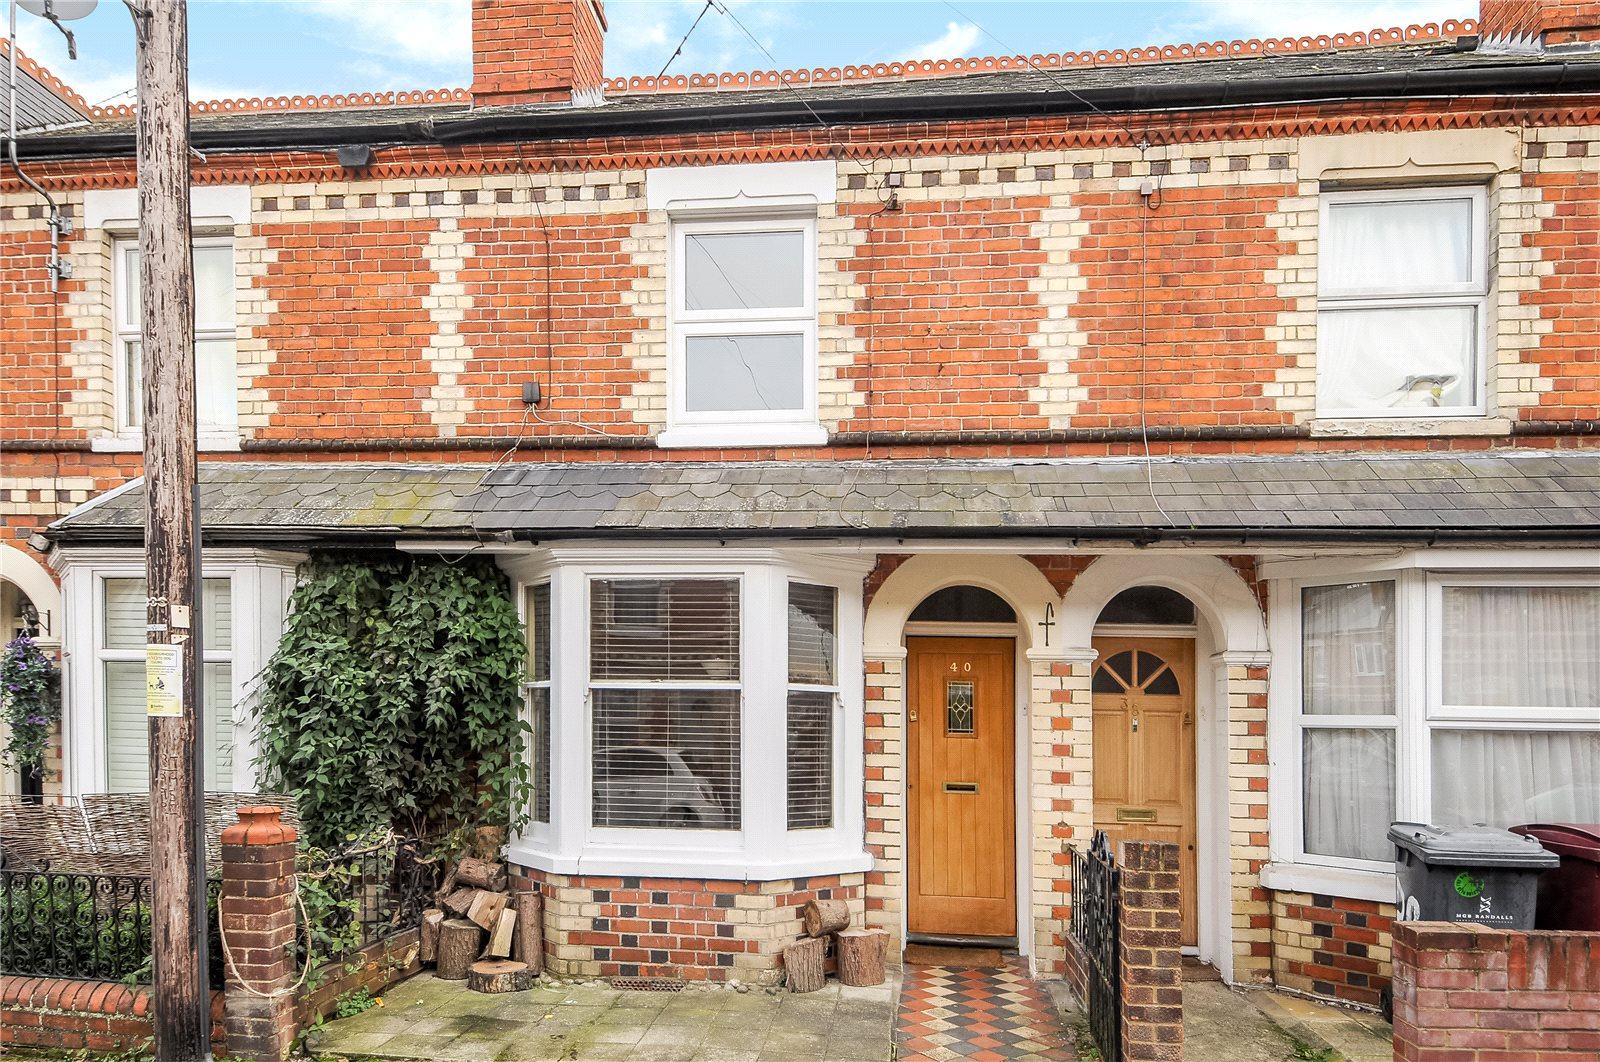 2 Bedrooms End Of Terrace House for sale in Coventry Road, Reading, Berkshire, RG1